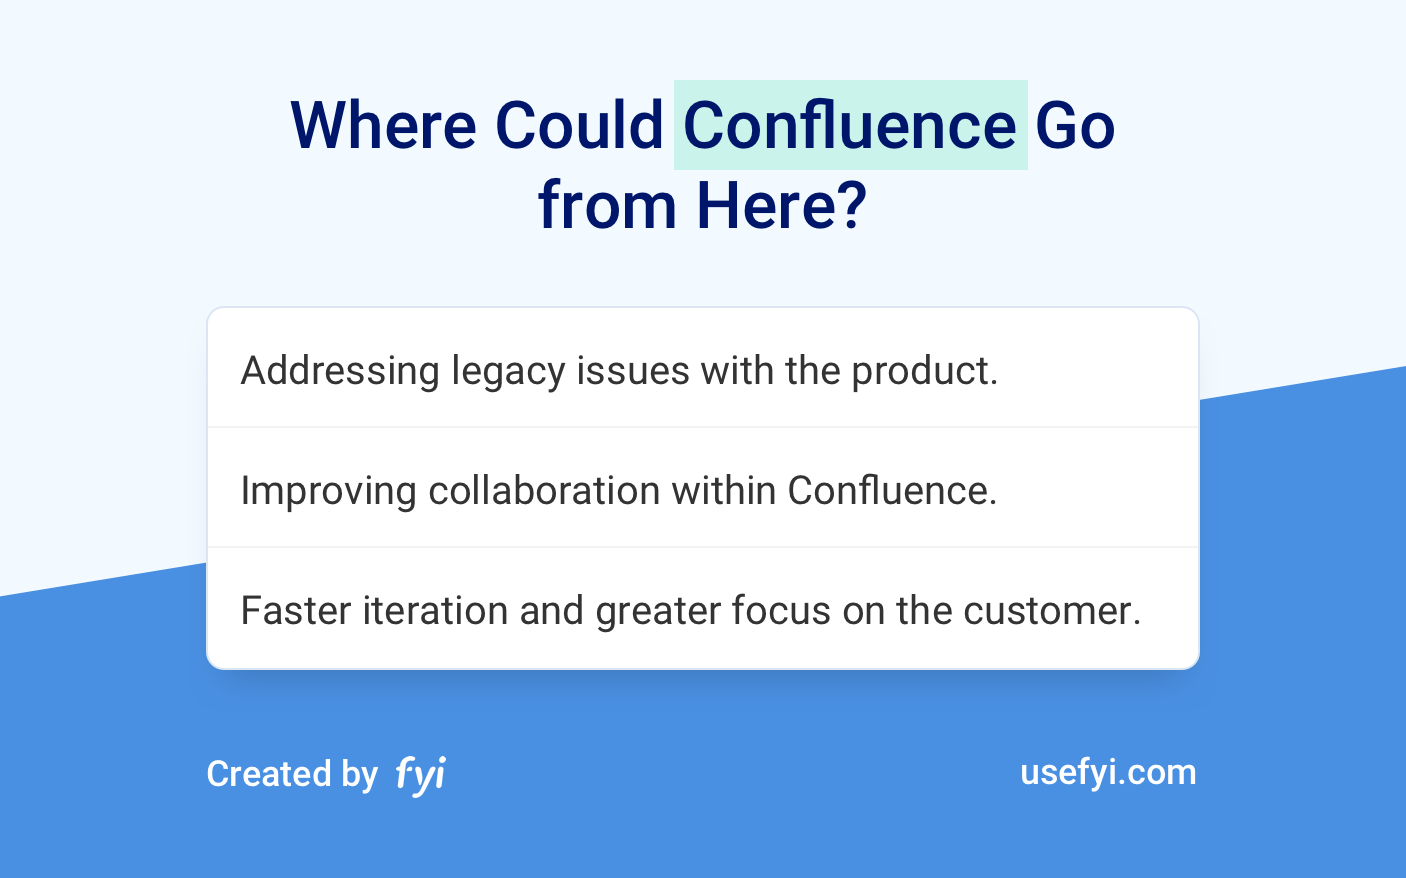 Future of Confluence